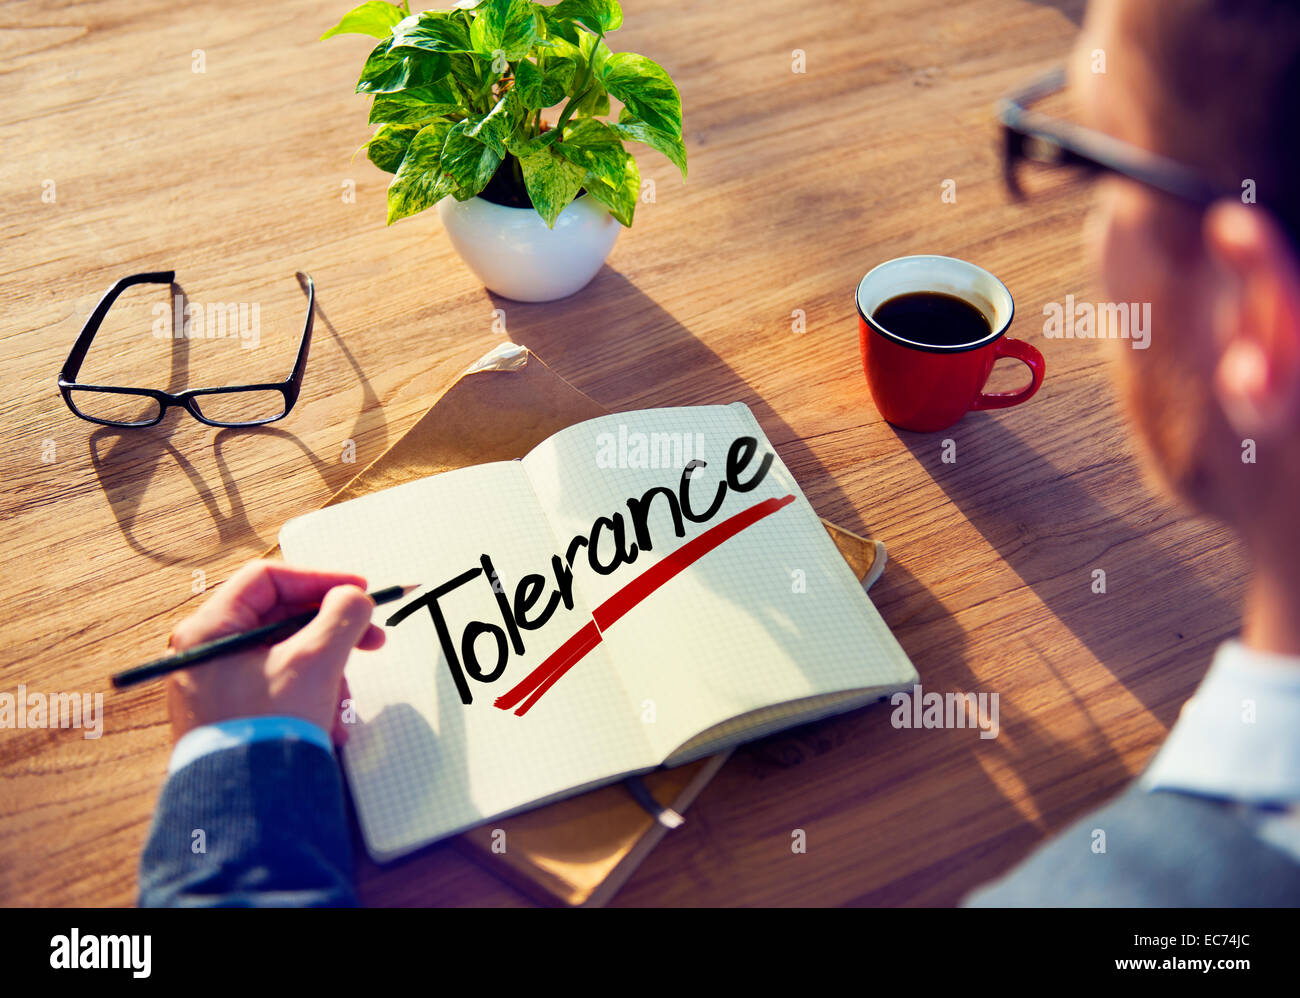 A Man Brainstorming about Tolerance - Stock Image